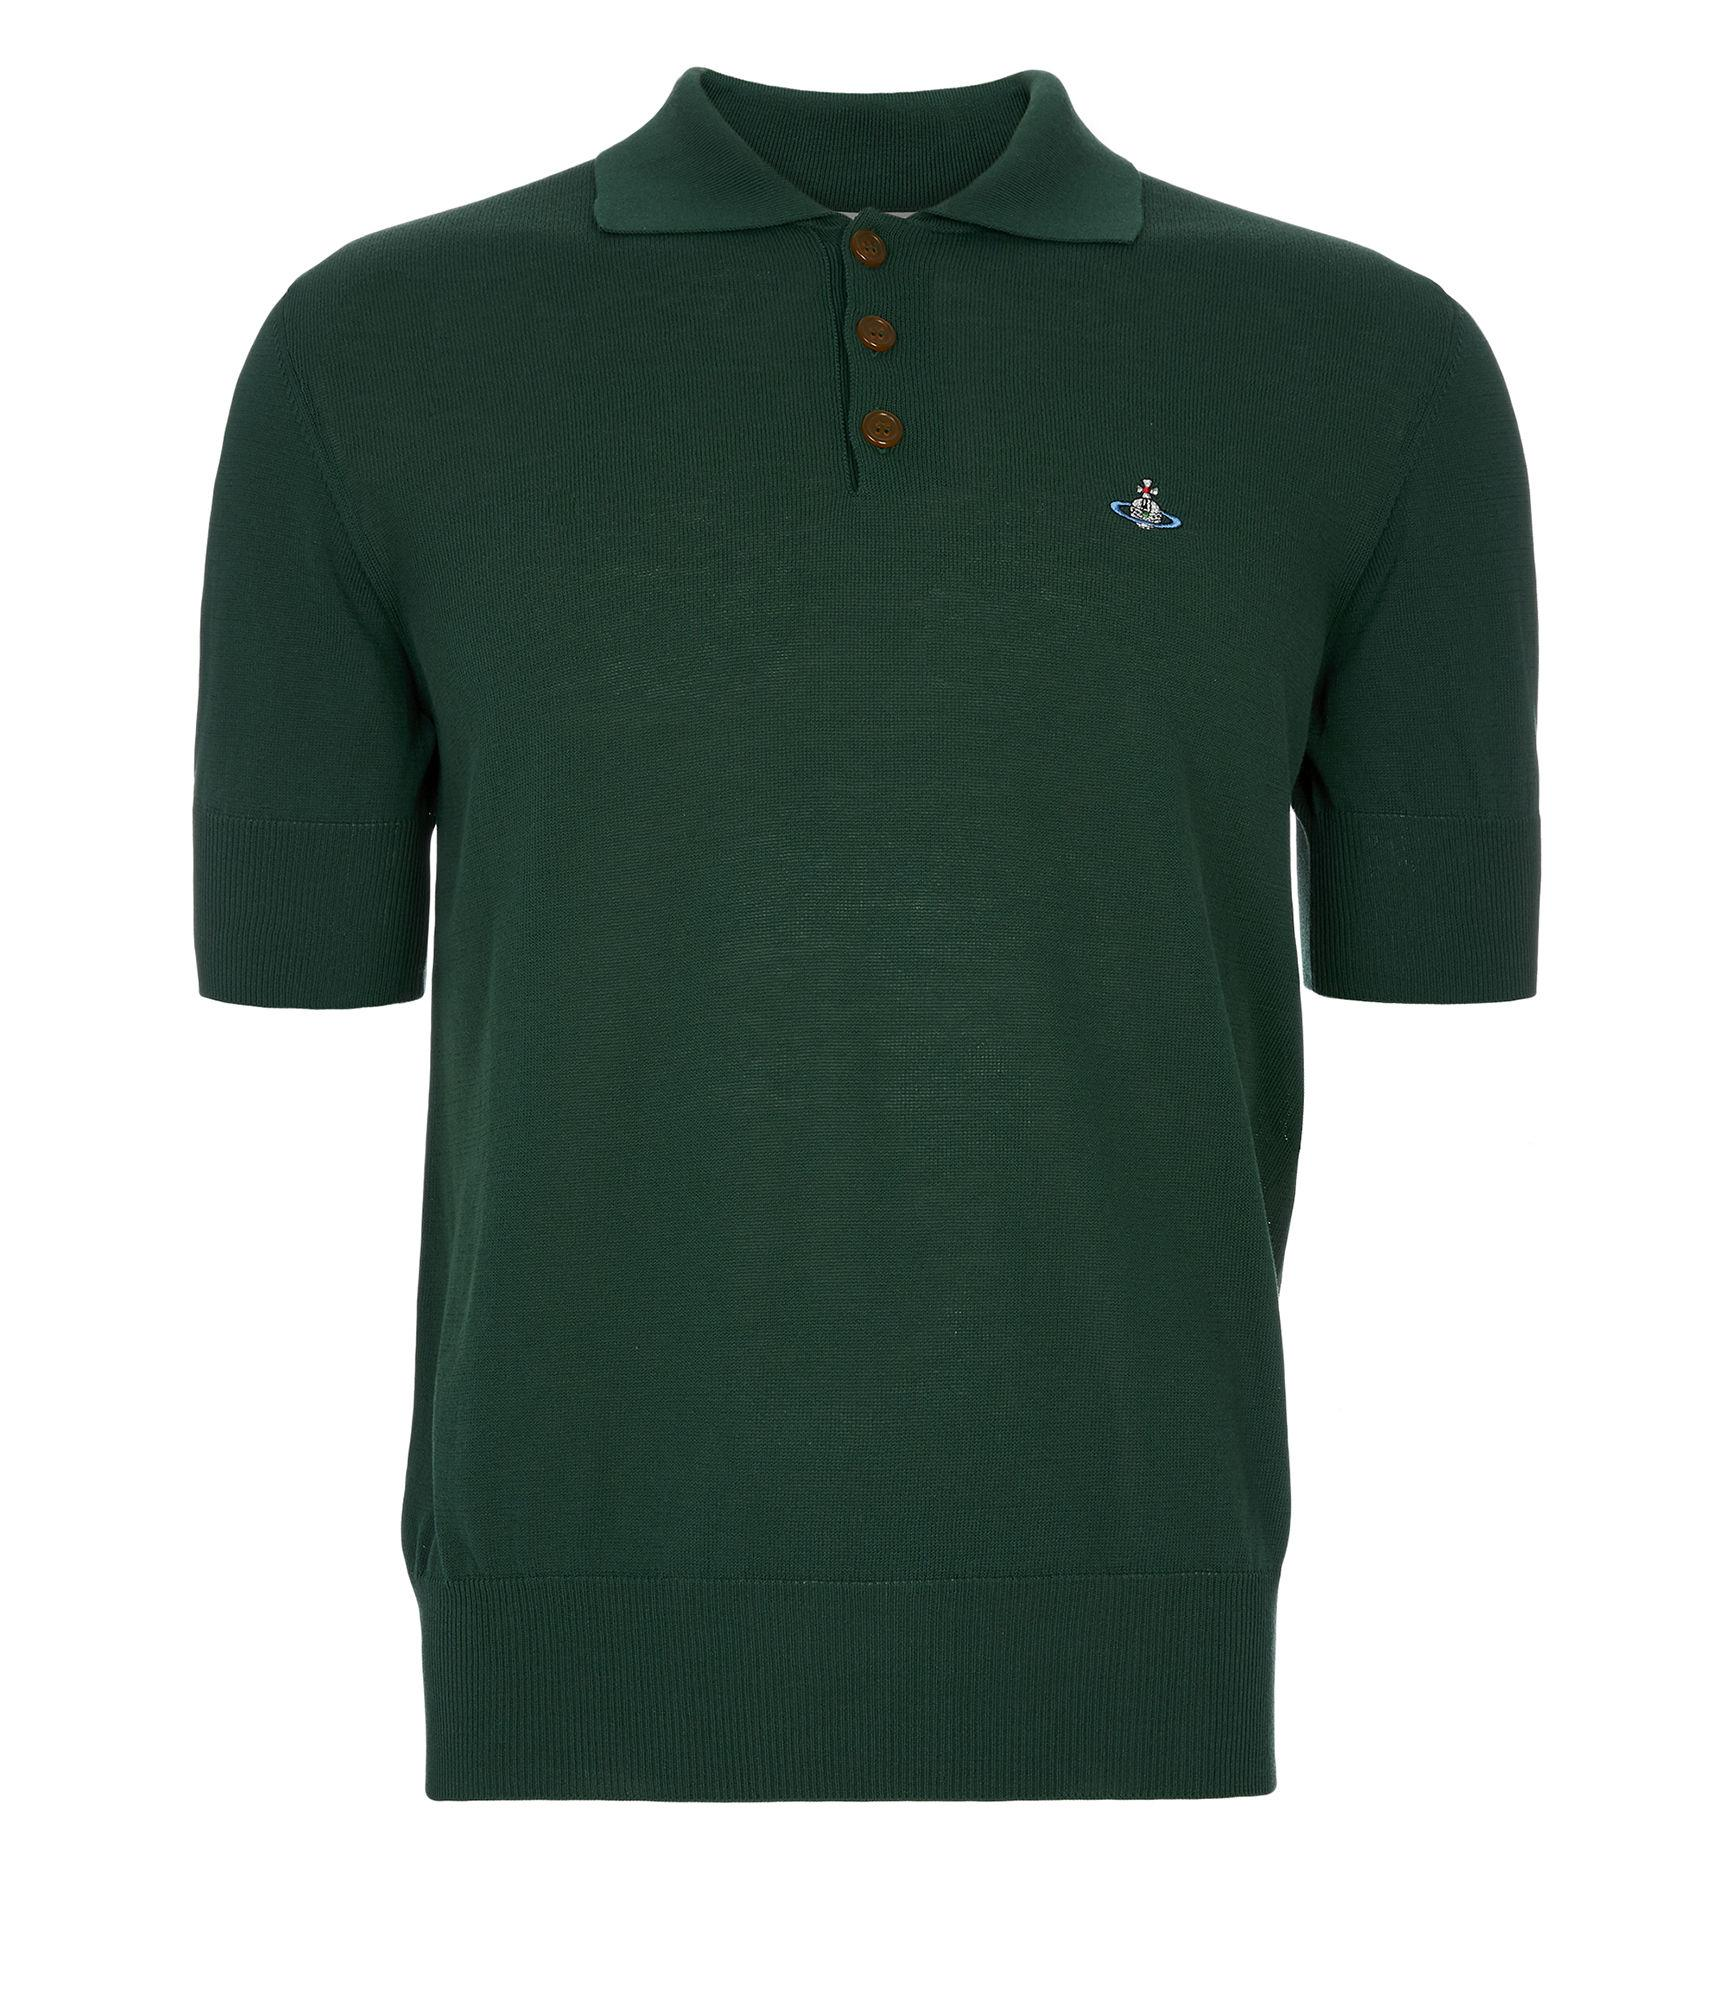 Vivienne Westwood Spring Polo Shirt Green